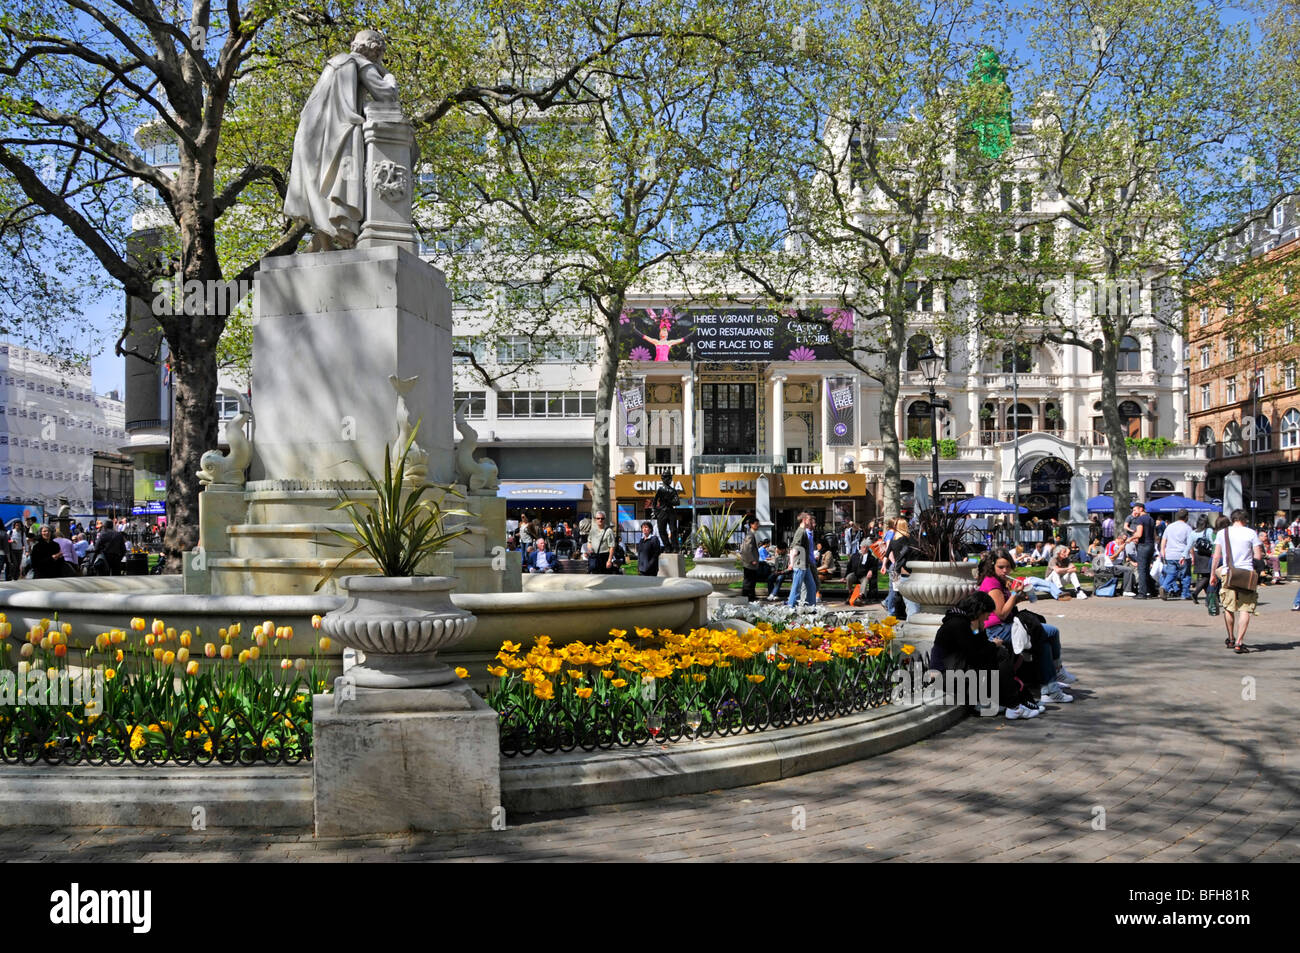 Leicester Square spring bulbs - Stock Image